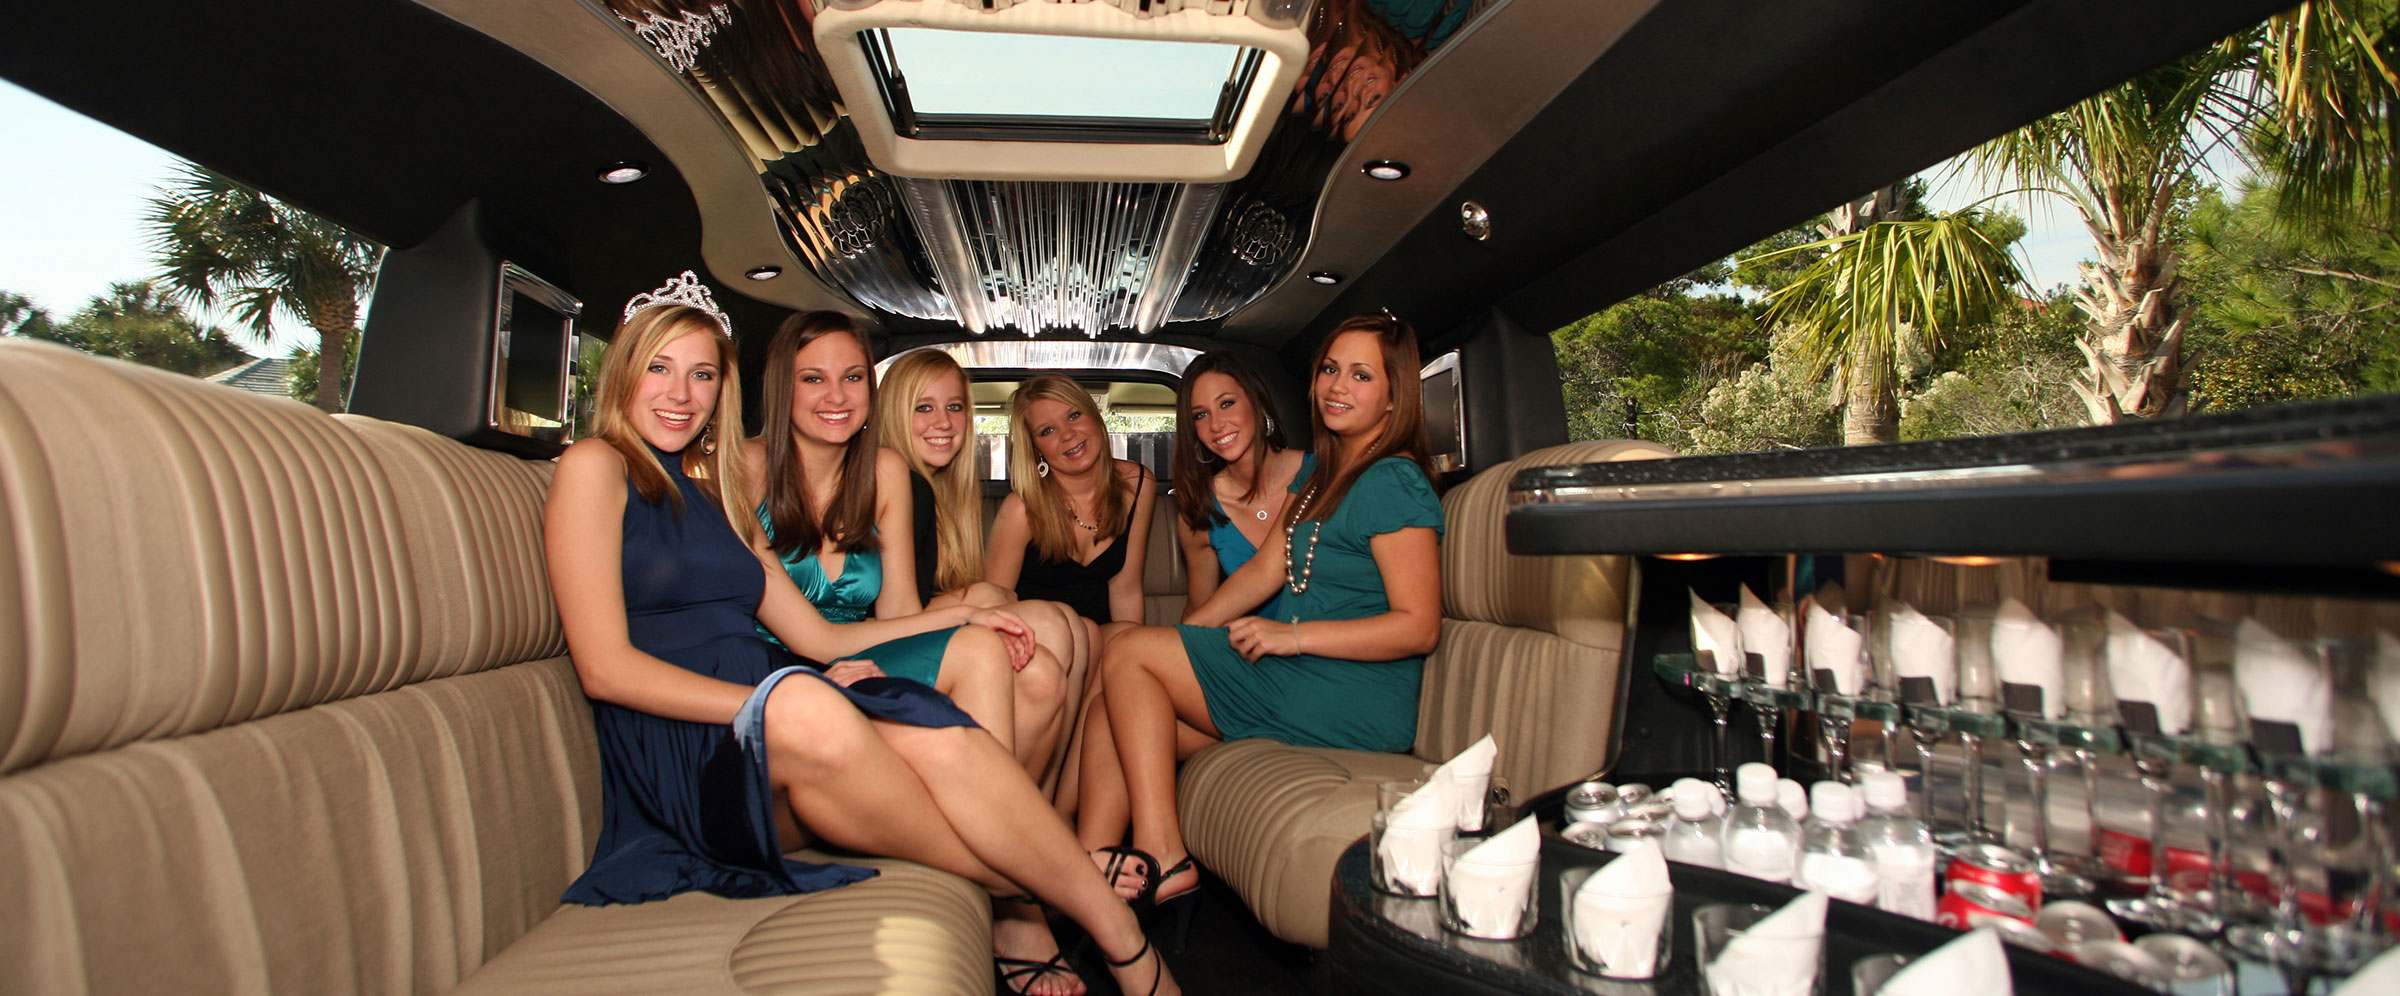 Limo Prom Prom Limo Charlotte Nc Charlotte Limousine Transportation